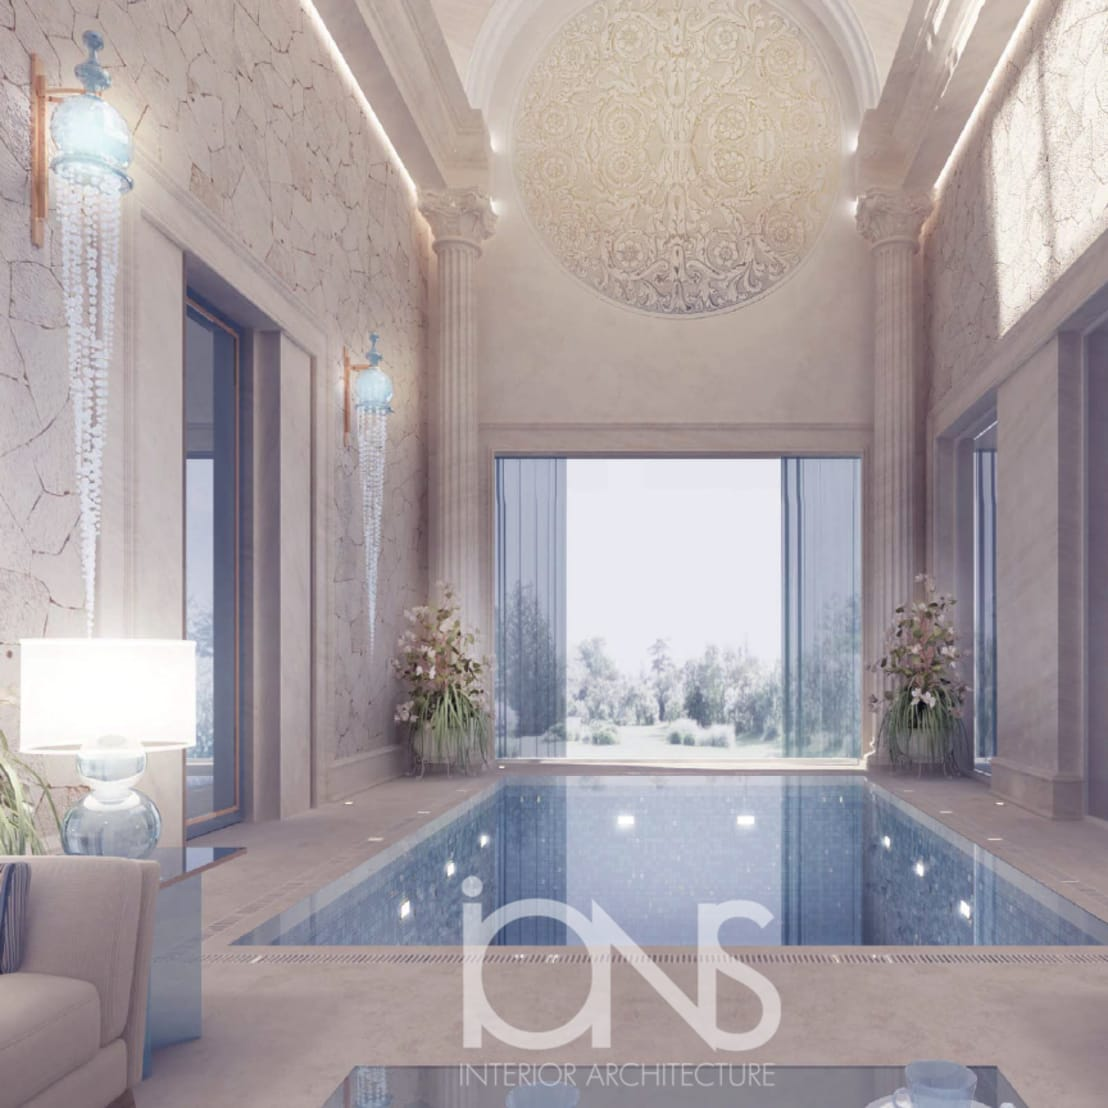 Ions Interior Design Dubai refreshing roman style indoor pool – design ideas from ions